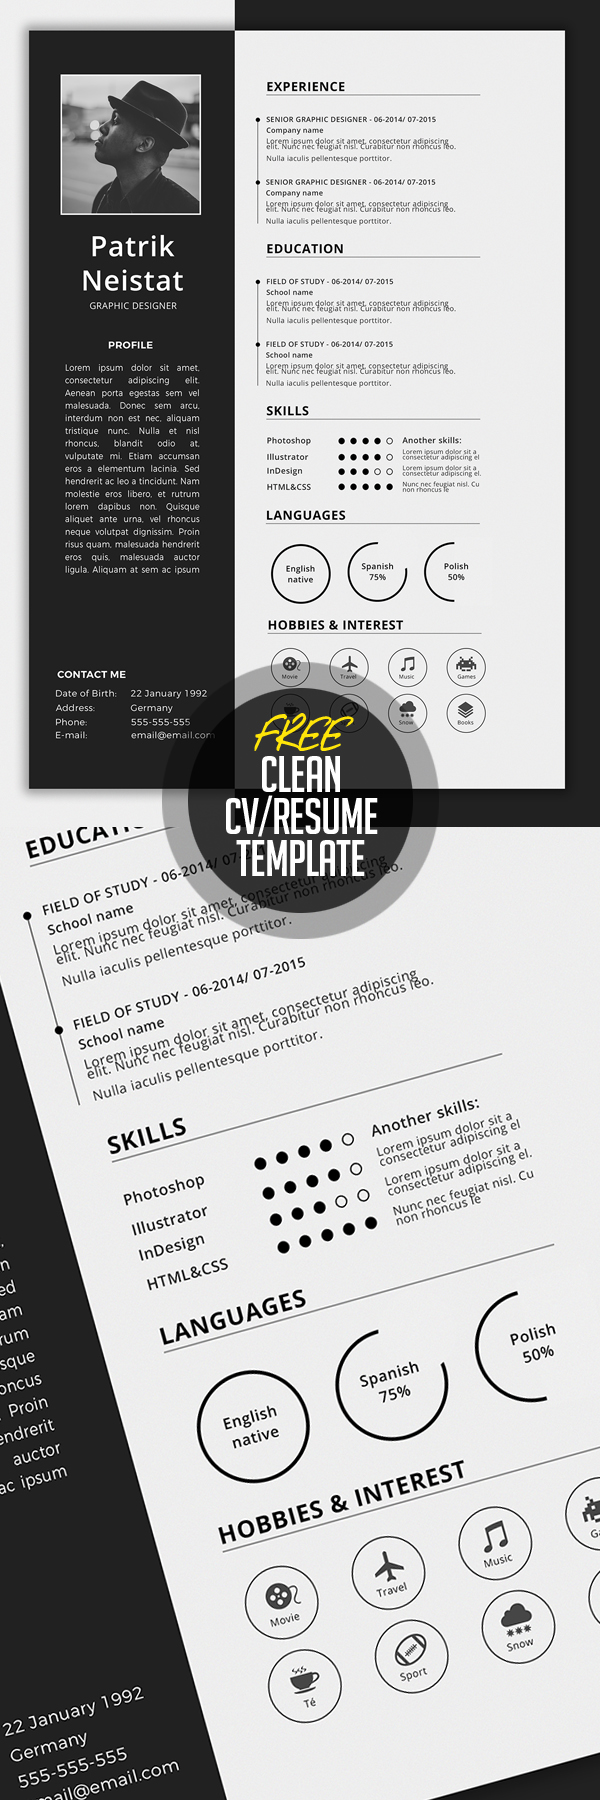 Simple CV/Resume Template Free Download  Creative Resume Templates Free Download